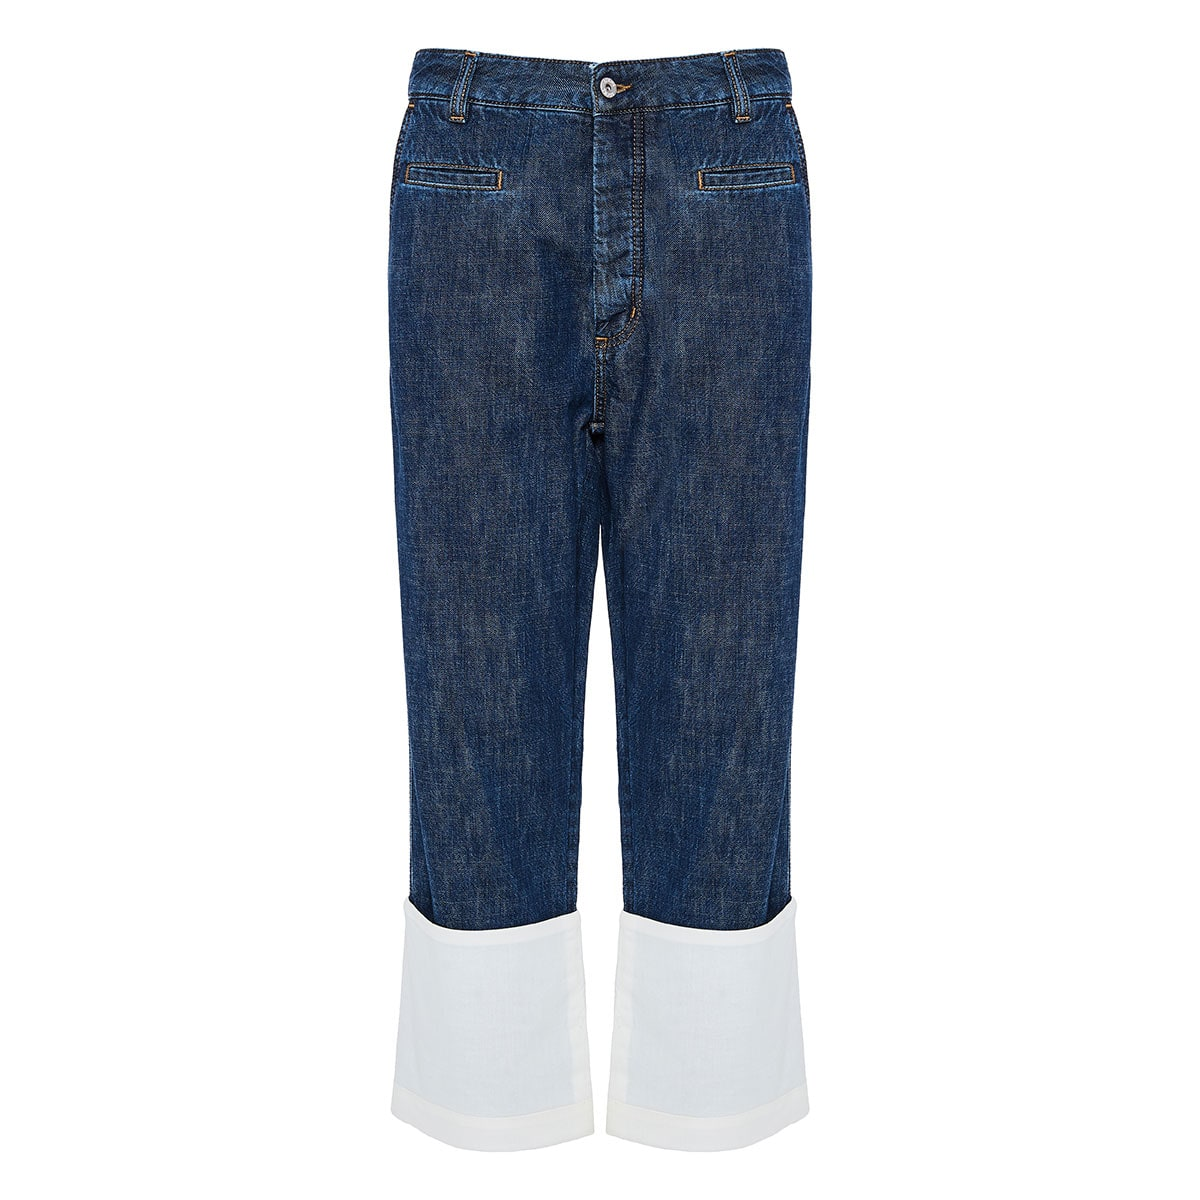 Oversized jeans with folded hems